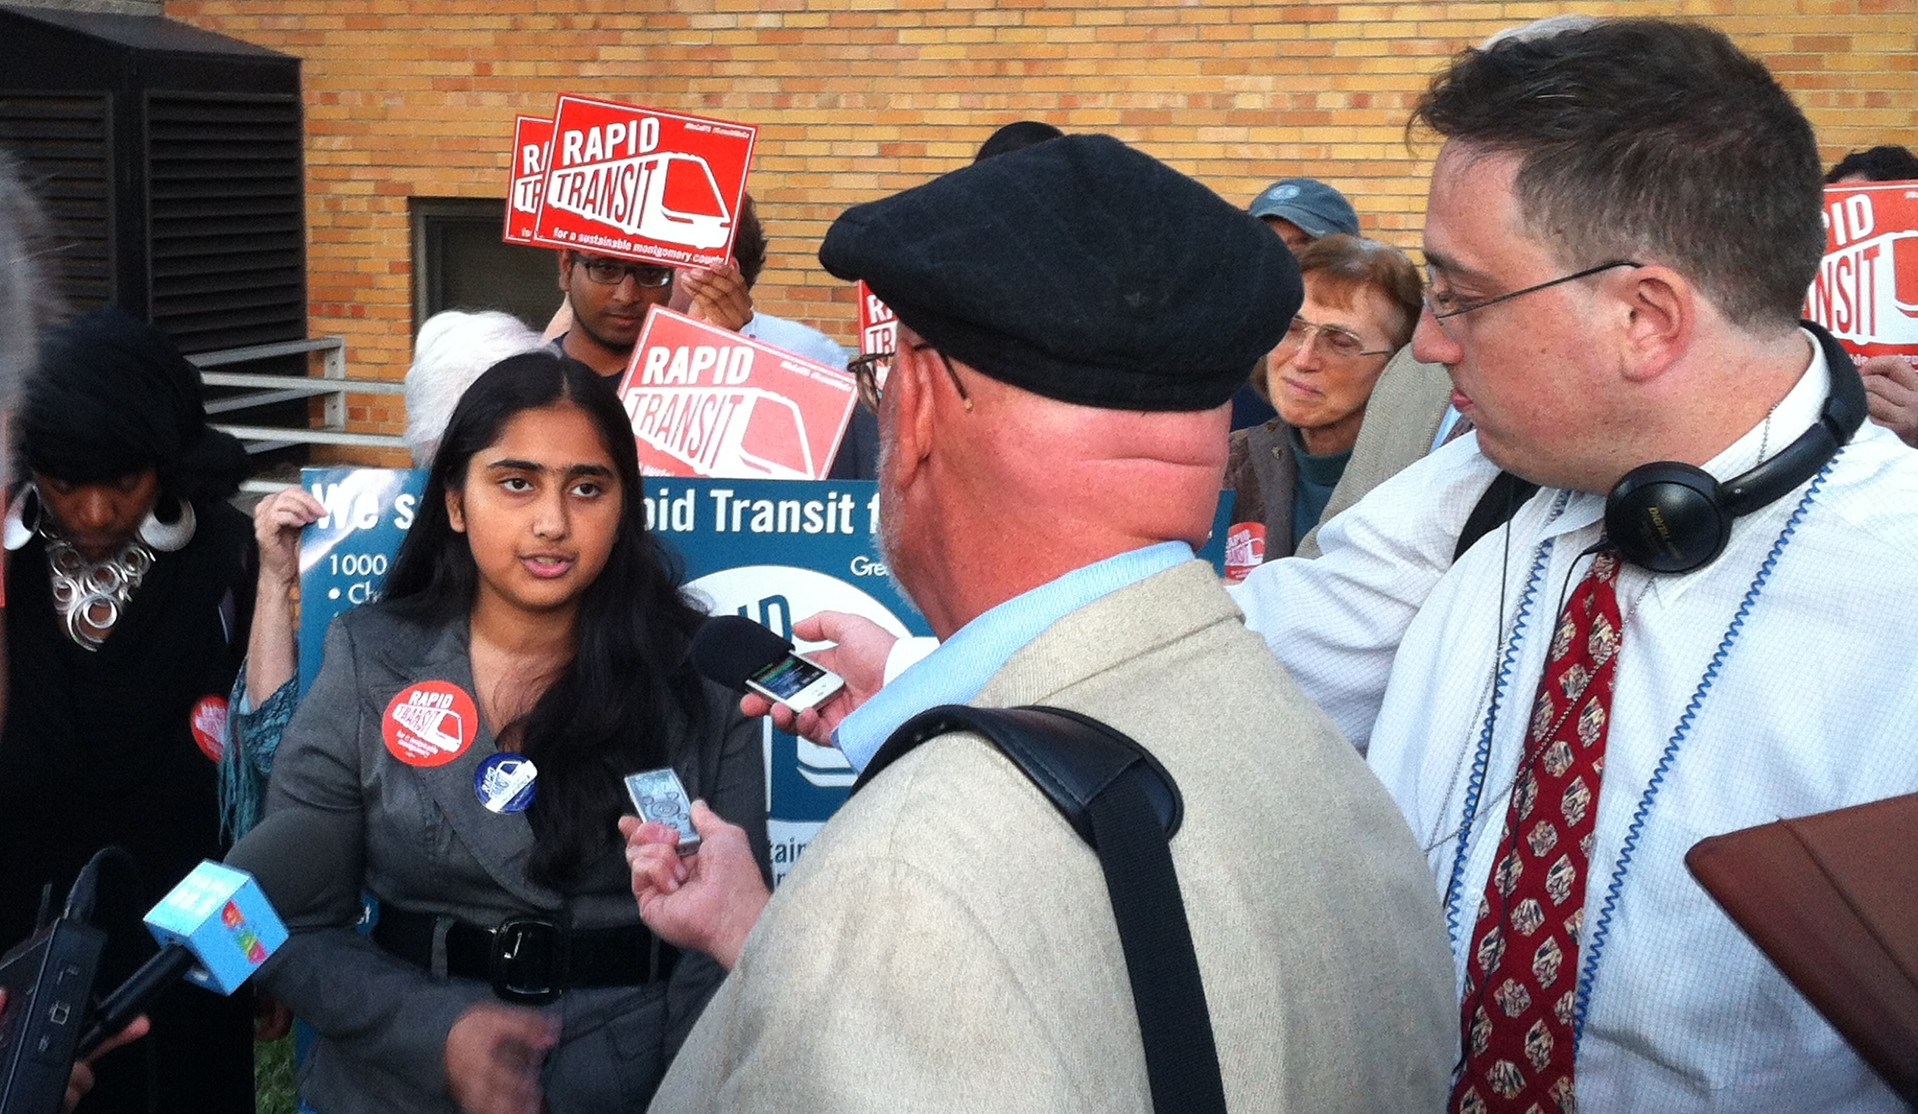 Sarena helps rally the crowd before MCYD testifies in support of Rapid Transit at a County Council Hearing (September 2013)